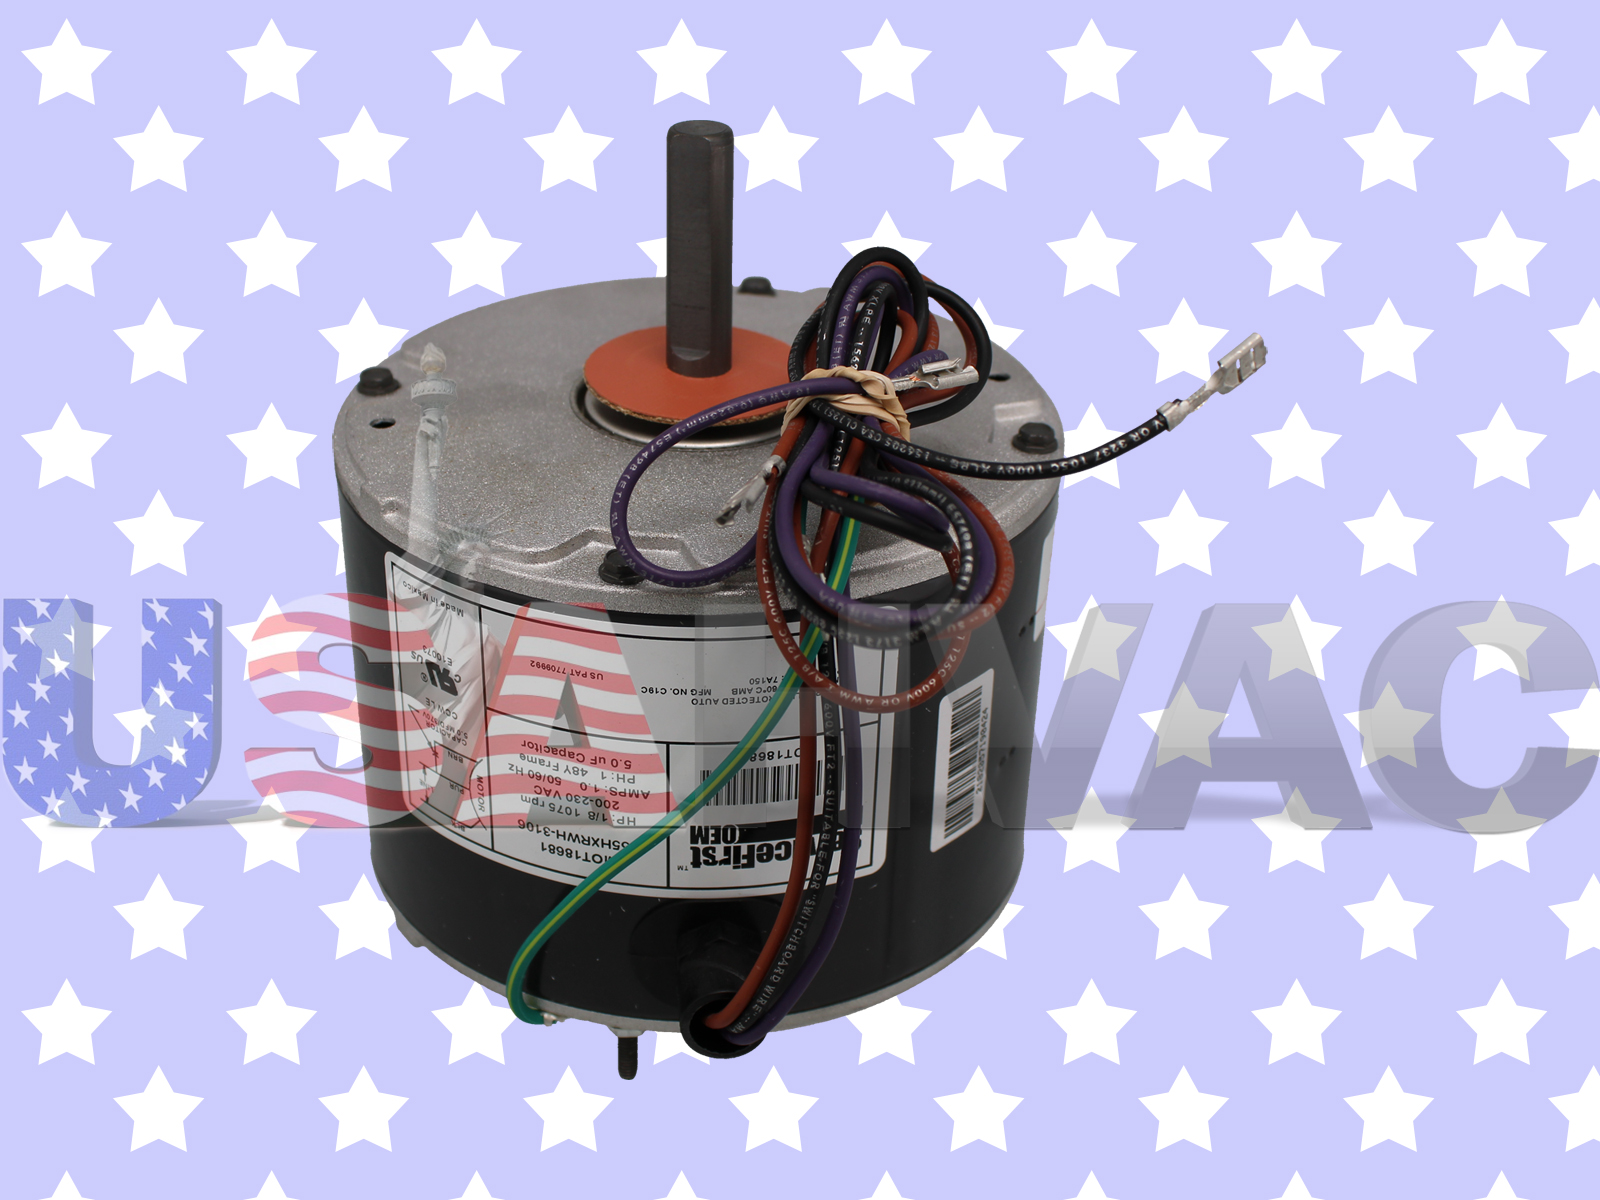 Trane american standard fan motor 1 8 hp 208 240v 1075 rpm for American standard fan motor